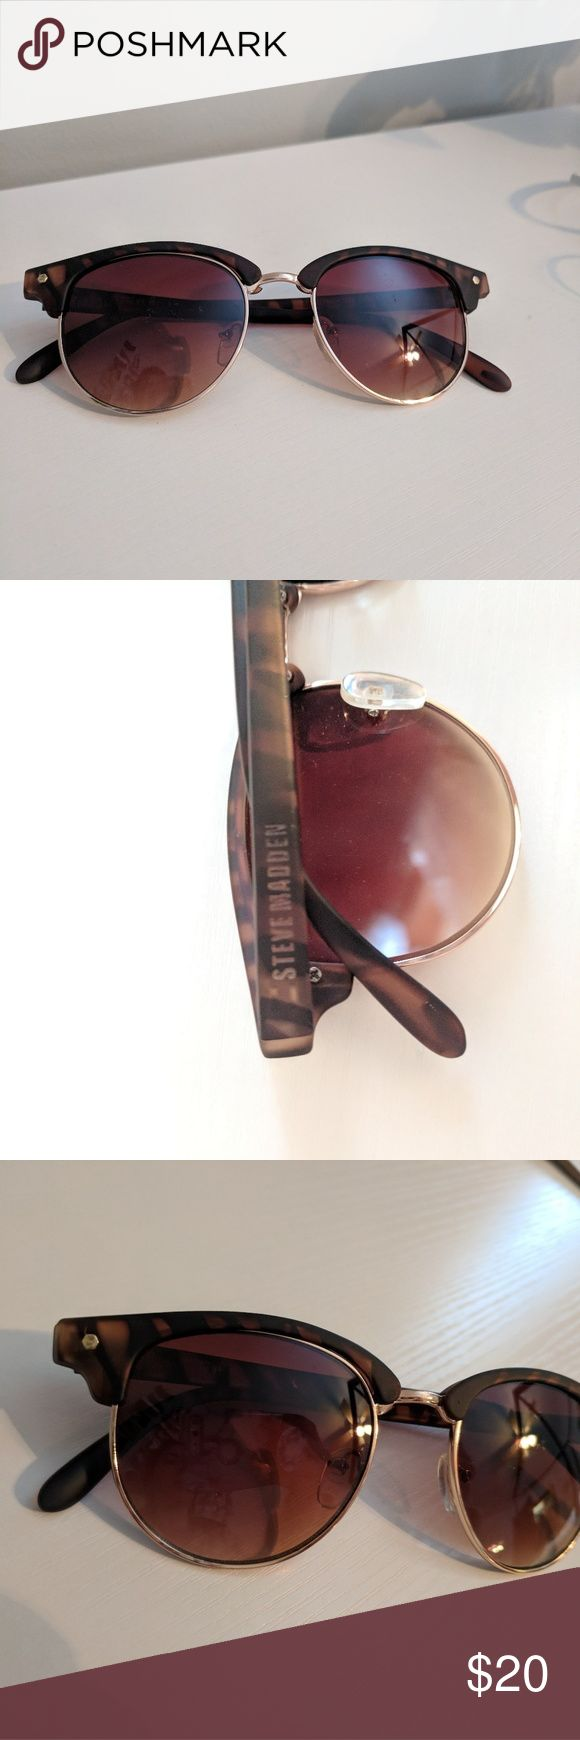 Steve Madden sunglasses Only worn a couple of times Steve Madden Accessories Sunglasses